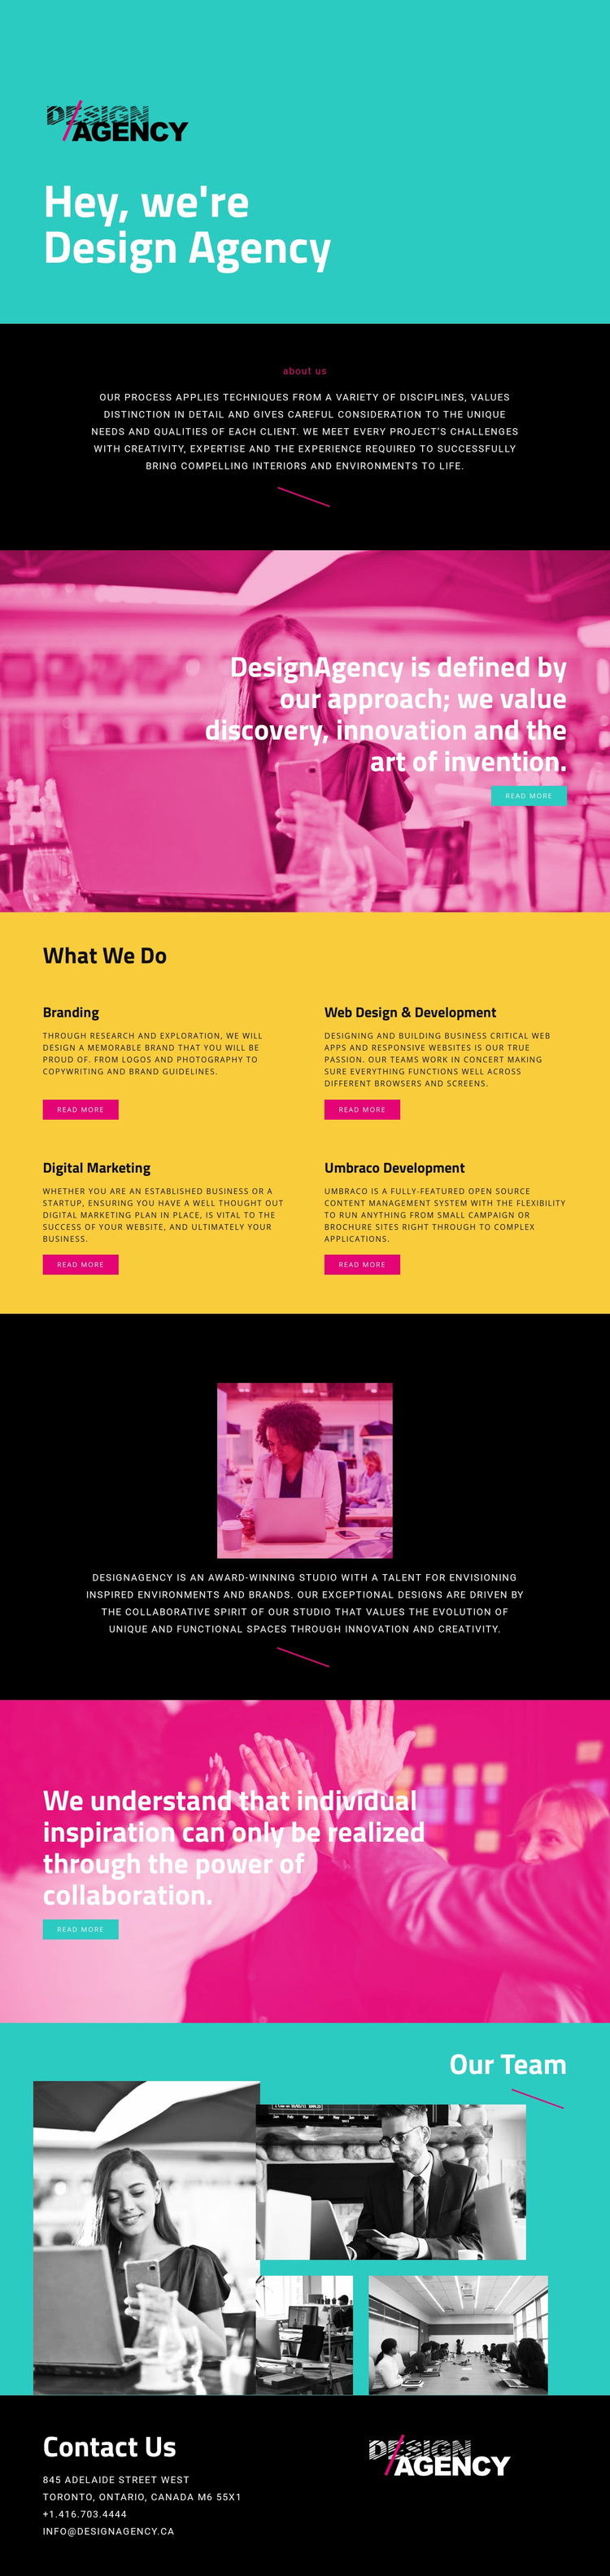 Hello, we are design agency Web Page Design